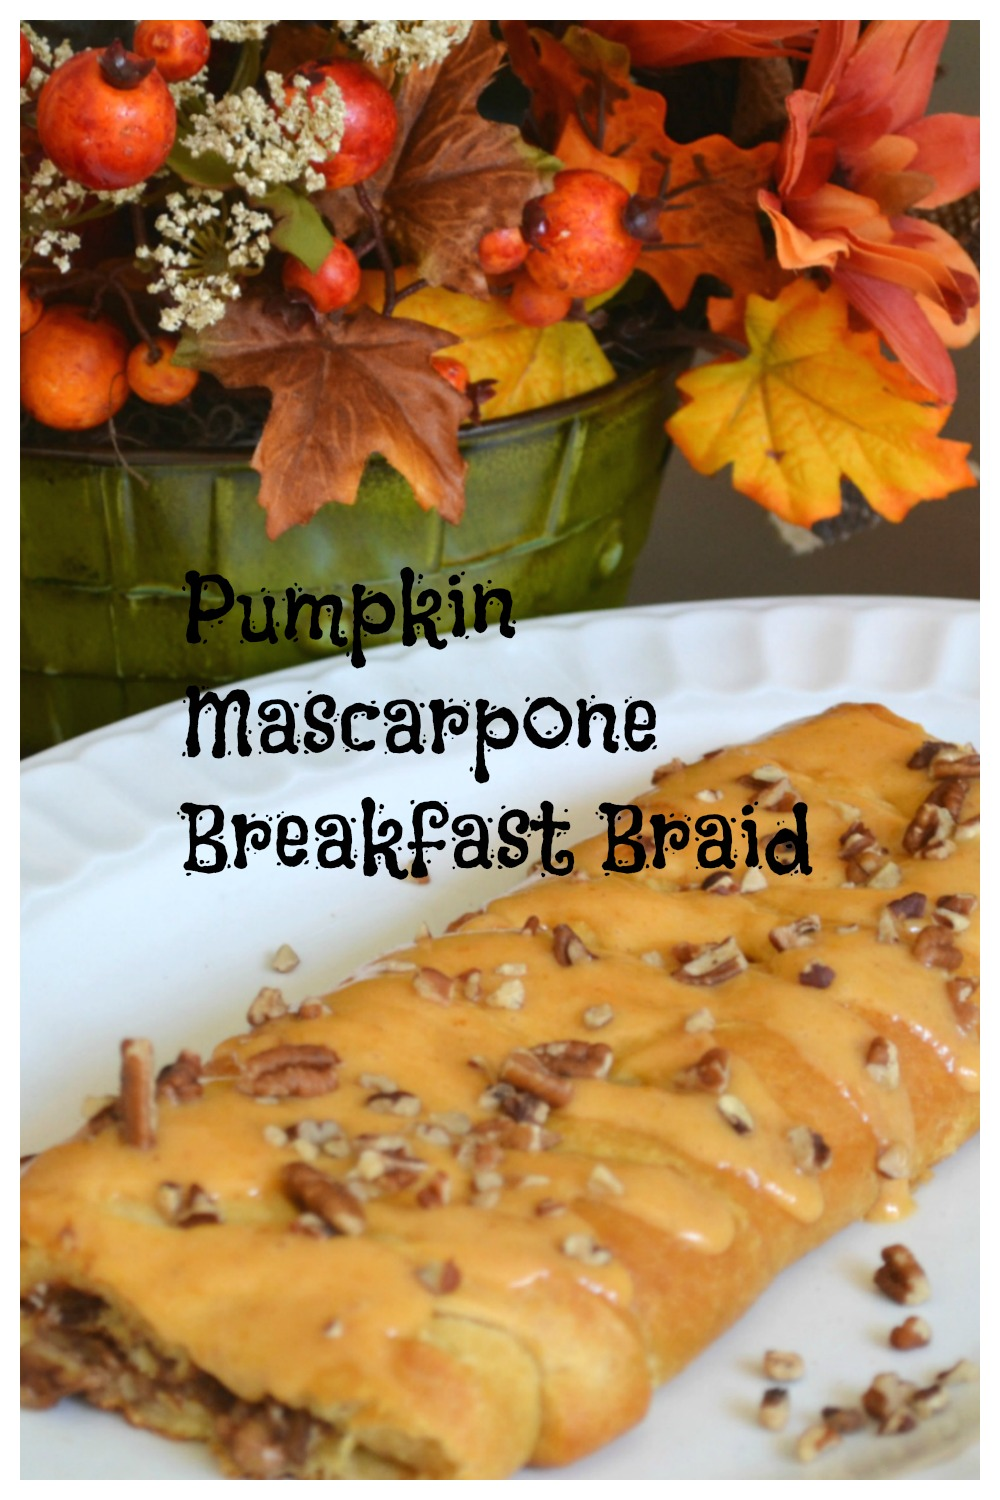 A beautiful breakfast braid filled with pumpkin, mascarpone cheese, and nuts. Baked in a refirgerated cresent dough.